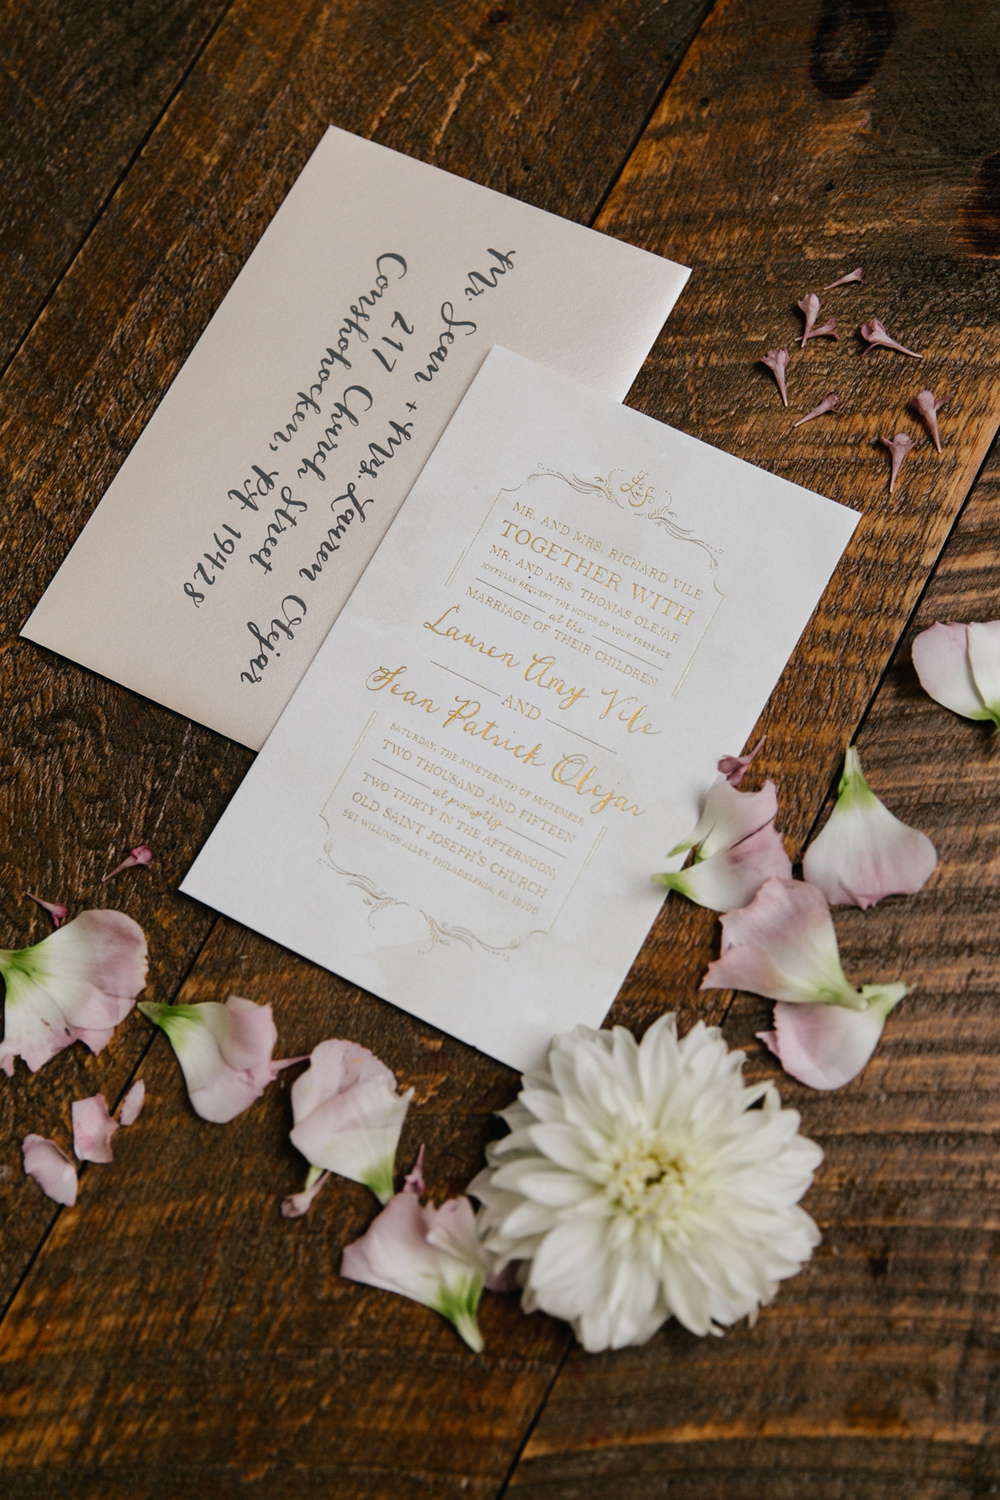 All of the above photography by: Emily Wren Photography